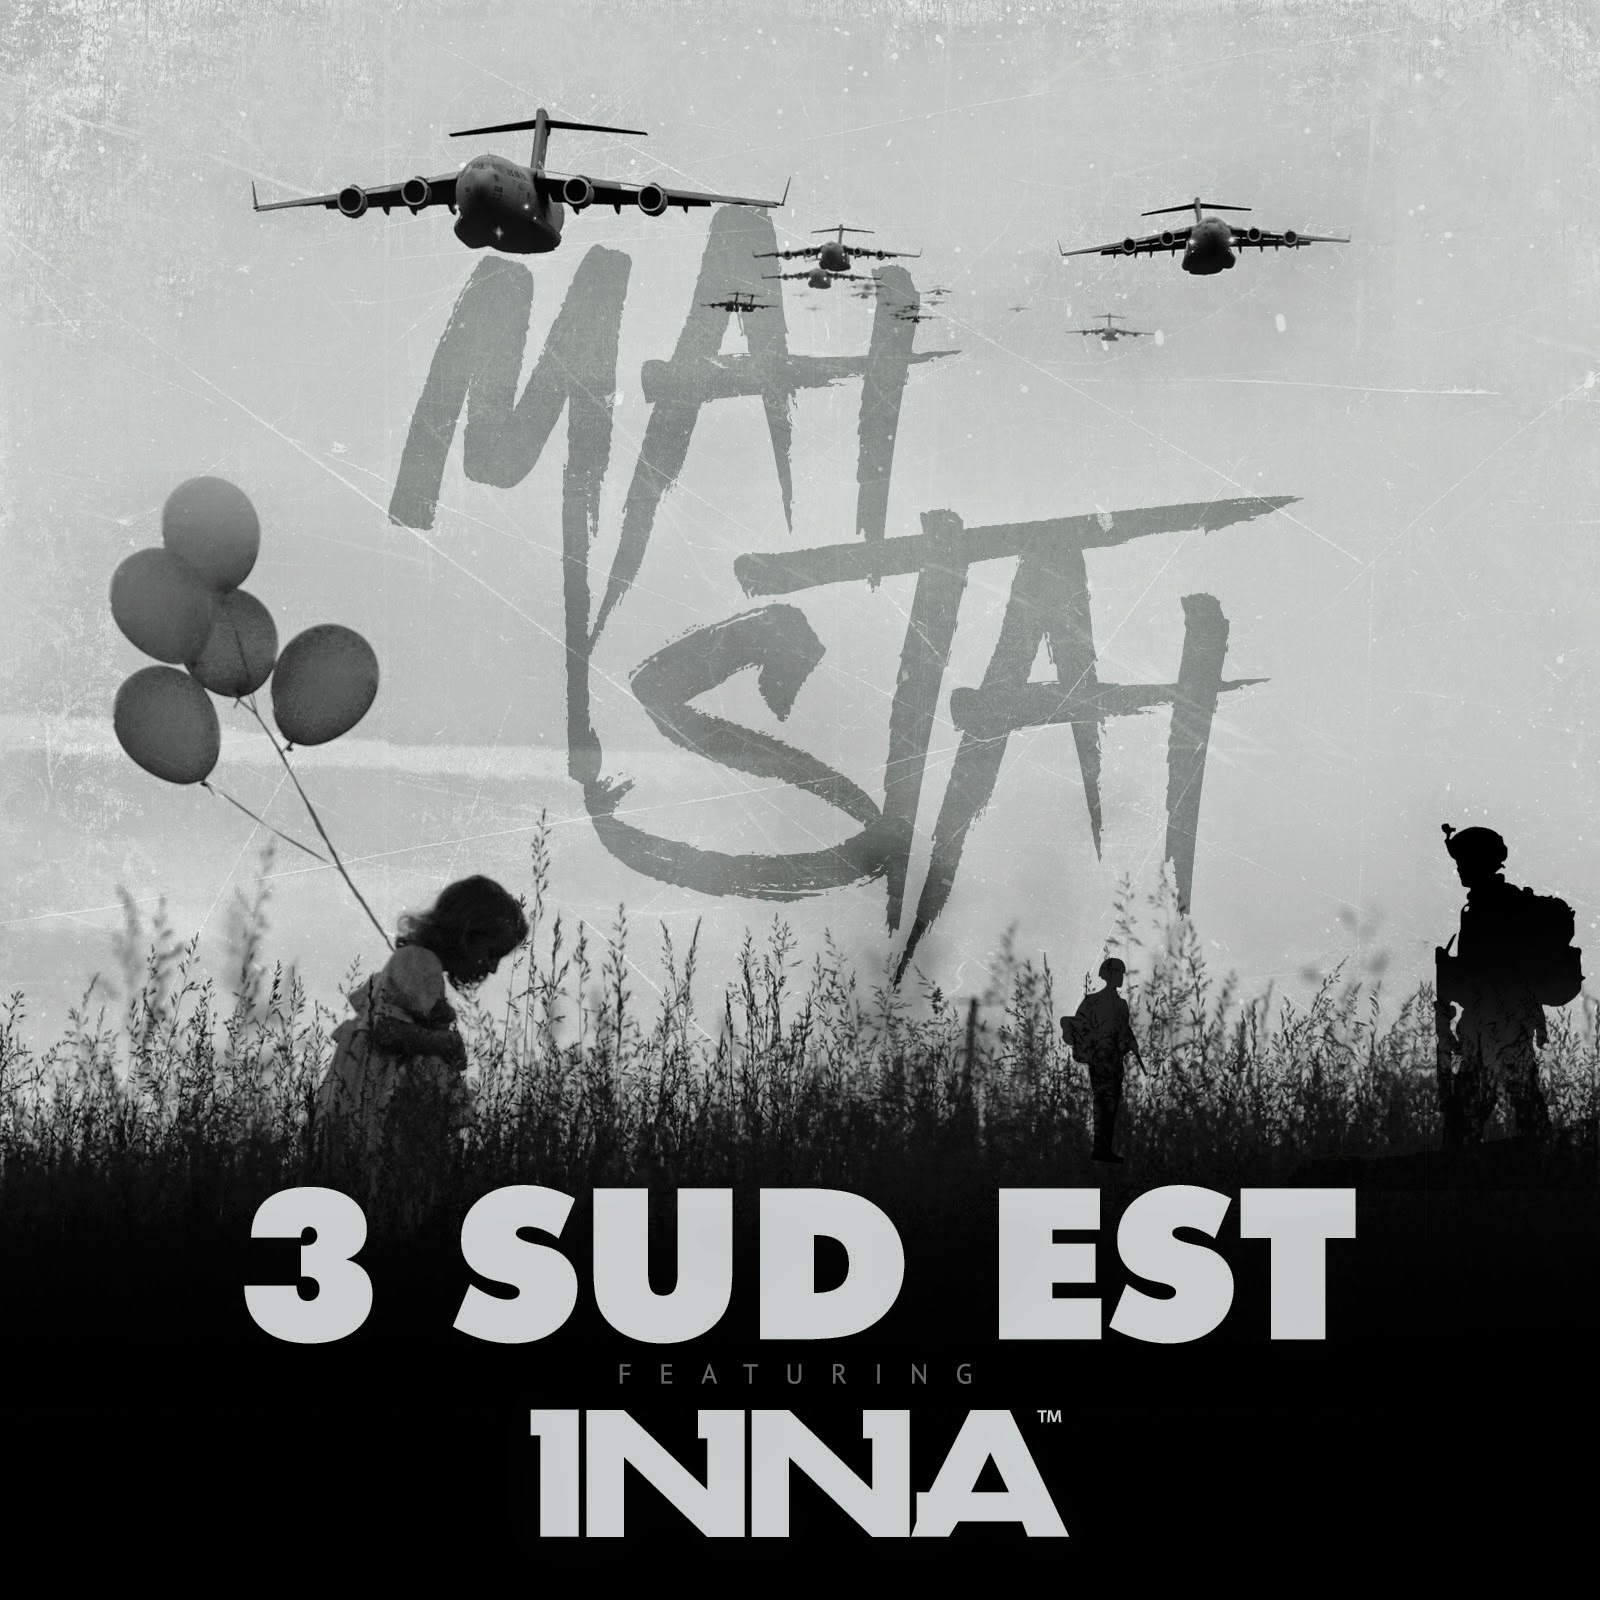 3 SUD EST feat INNA Mai stai cea mai noua melodie 2015 trupa 3 SUD EST featuring INNA Mai stai 2015 Official Video YOUTUBE noul HIT 3 SUD EST si INNA Mai stai Laurentiu Duta Mai stai new video marti 28 aprilie 2015 3 SUD EST ft INNA Mai stai videoclip nou Inna 3 SUD EST Mai stai Laurentiu Duta new single 2015 Regie Bogdan Daragiu muzica noua inna Cat Music 2015 videoclipuri noi noul single al Innei Mai stai 28.04.2015 ultima melodie  a trupei 3 sud est mai stai feat inna aprilie 2015 ultima piesa a lui inna new song 2015 mai stai noul clip al innei feat 3 sud est mai stai noutati muzicale 2015